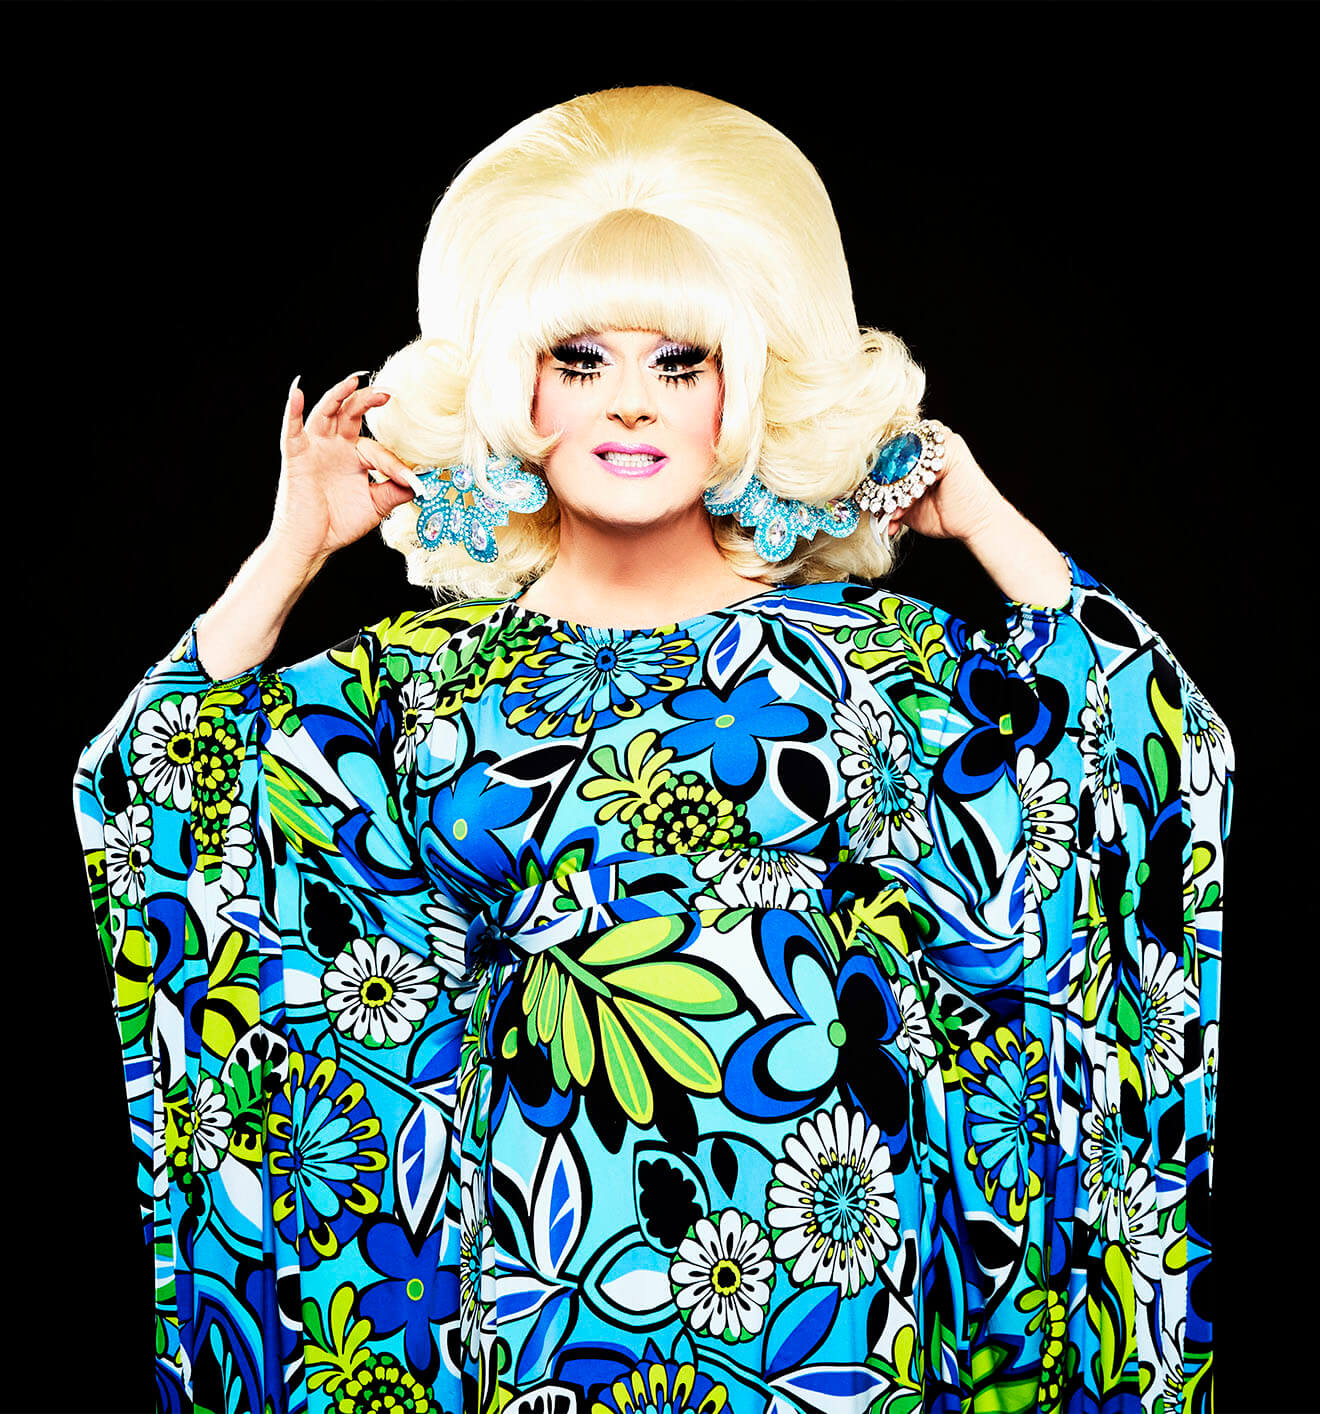 Chillin' with Lady Bunny